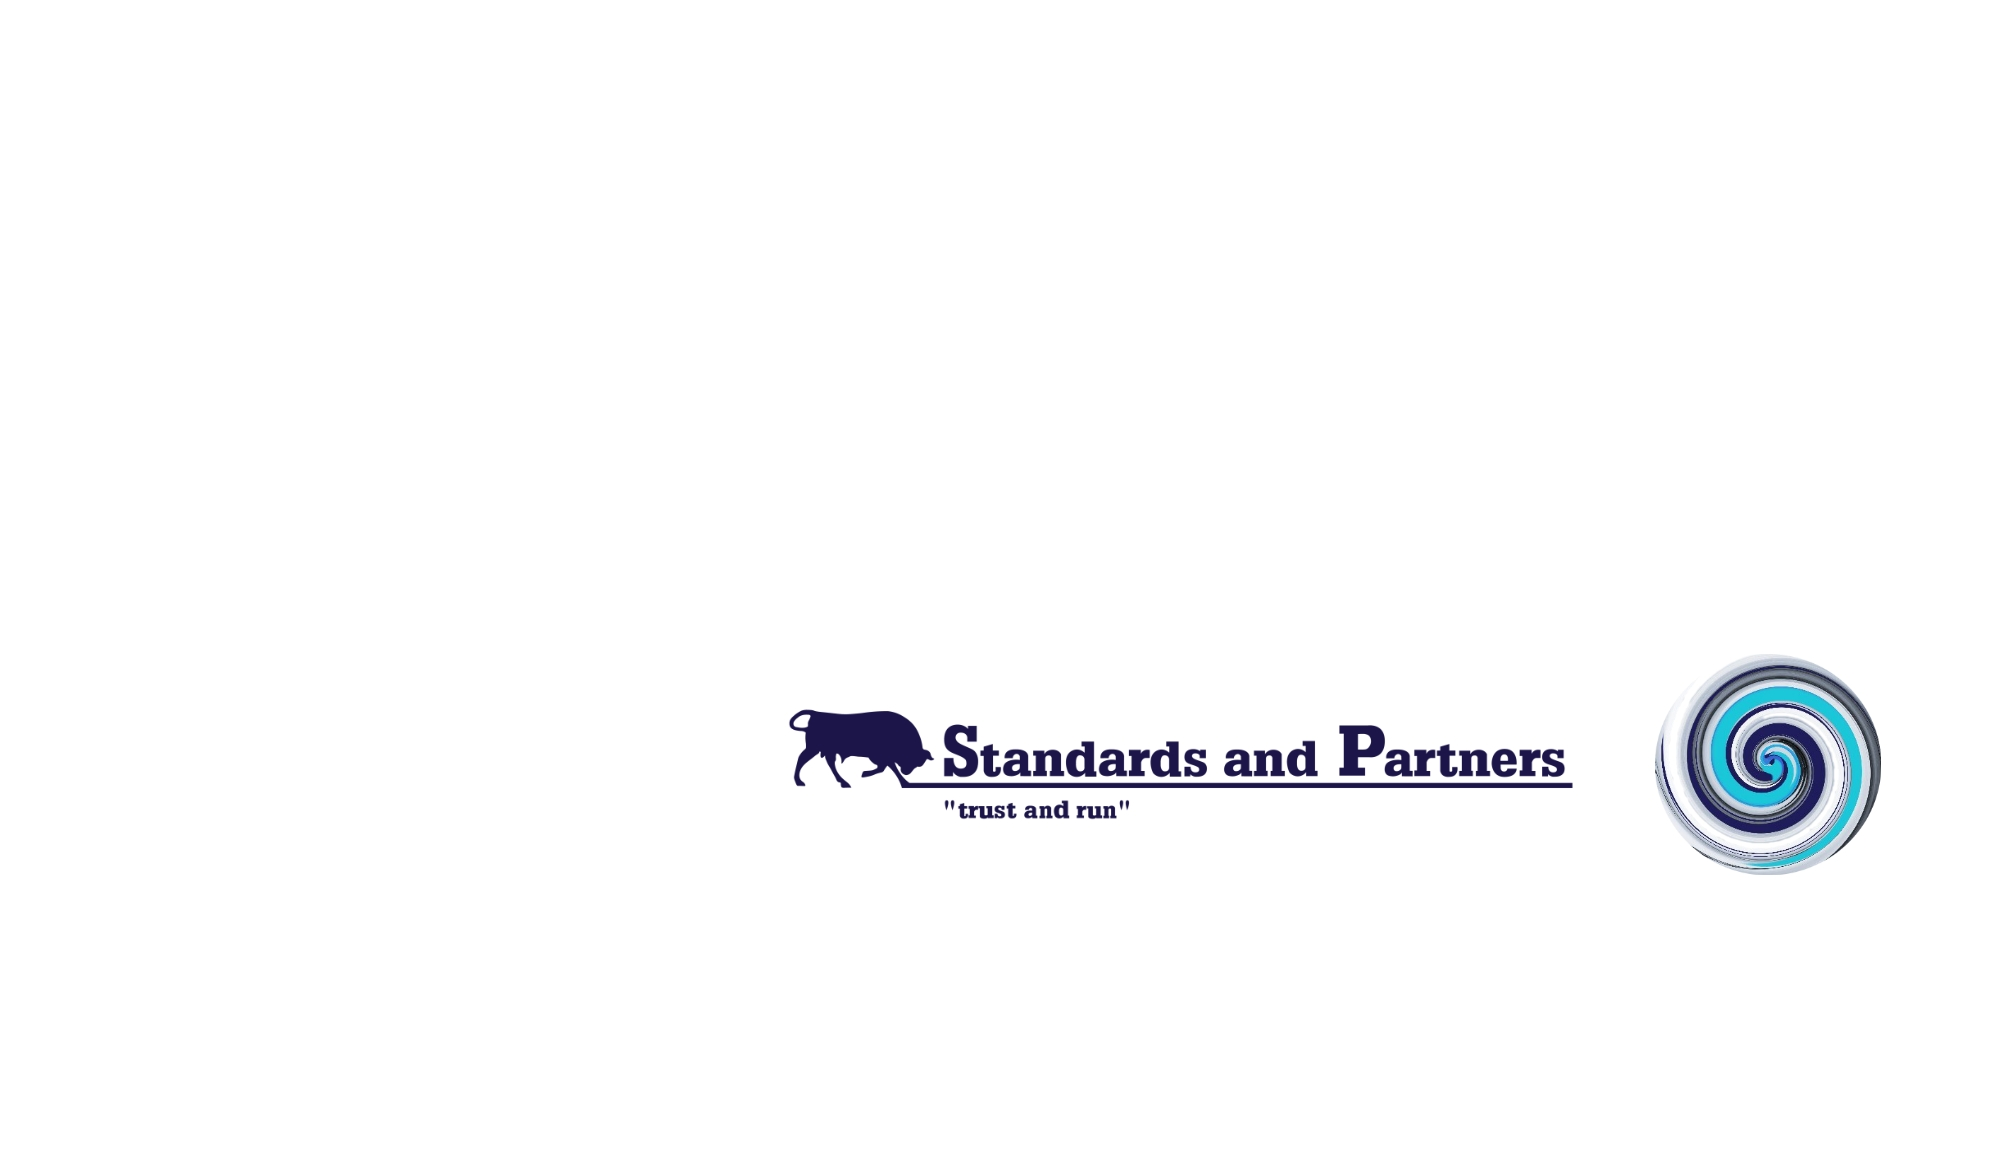 Bull Spirit in Anatolia: Standards and Partners